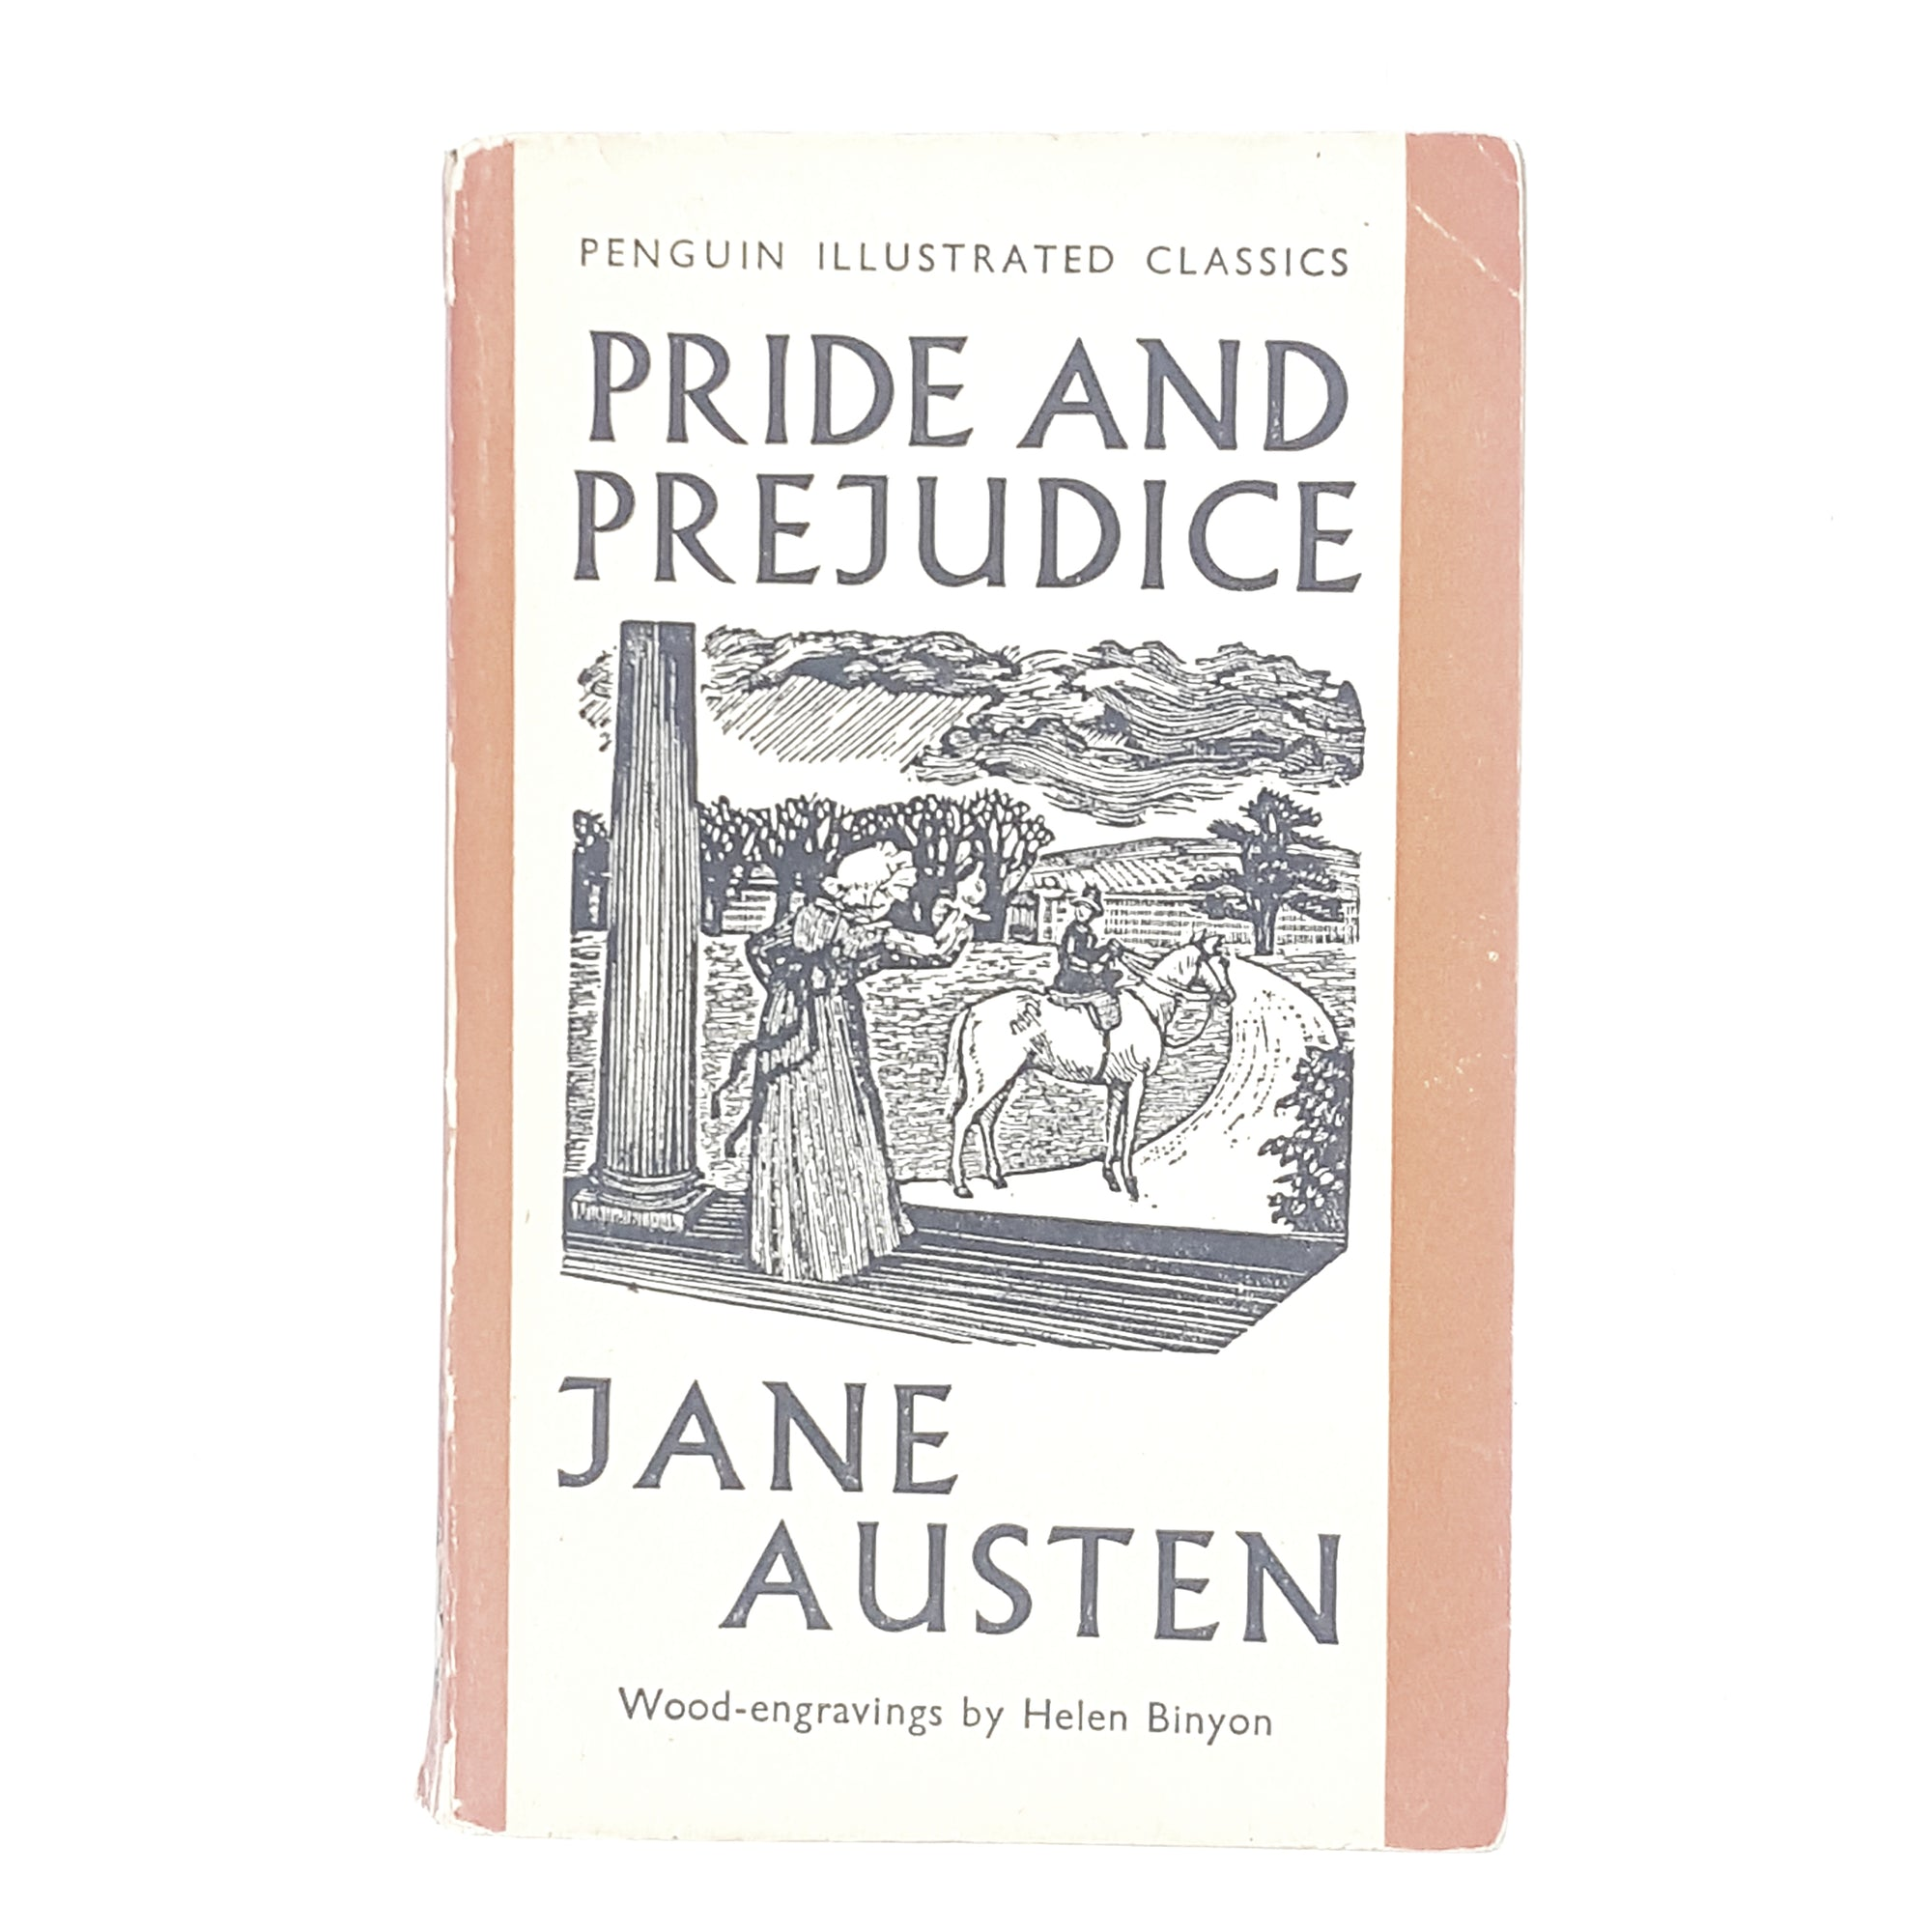 Jane Austen's Pride and Prejudice Penguin Illustrated Classics Edition 1938